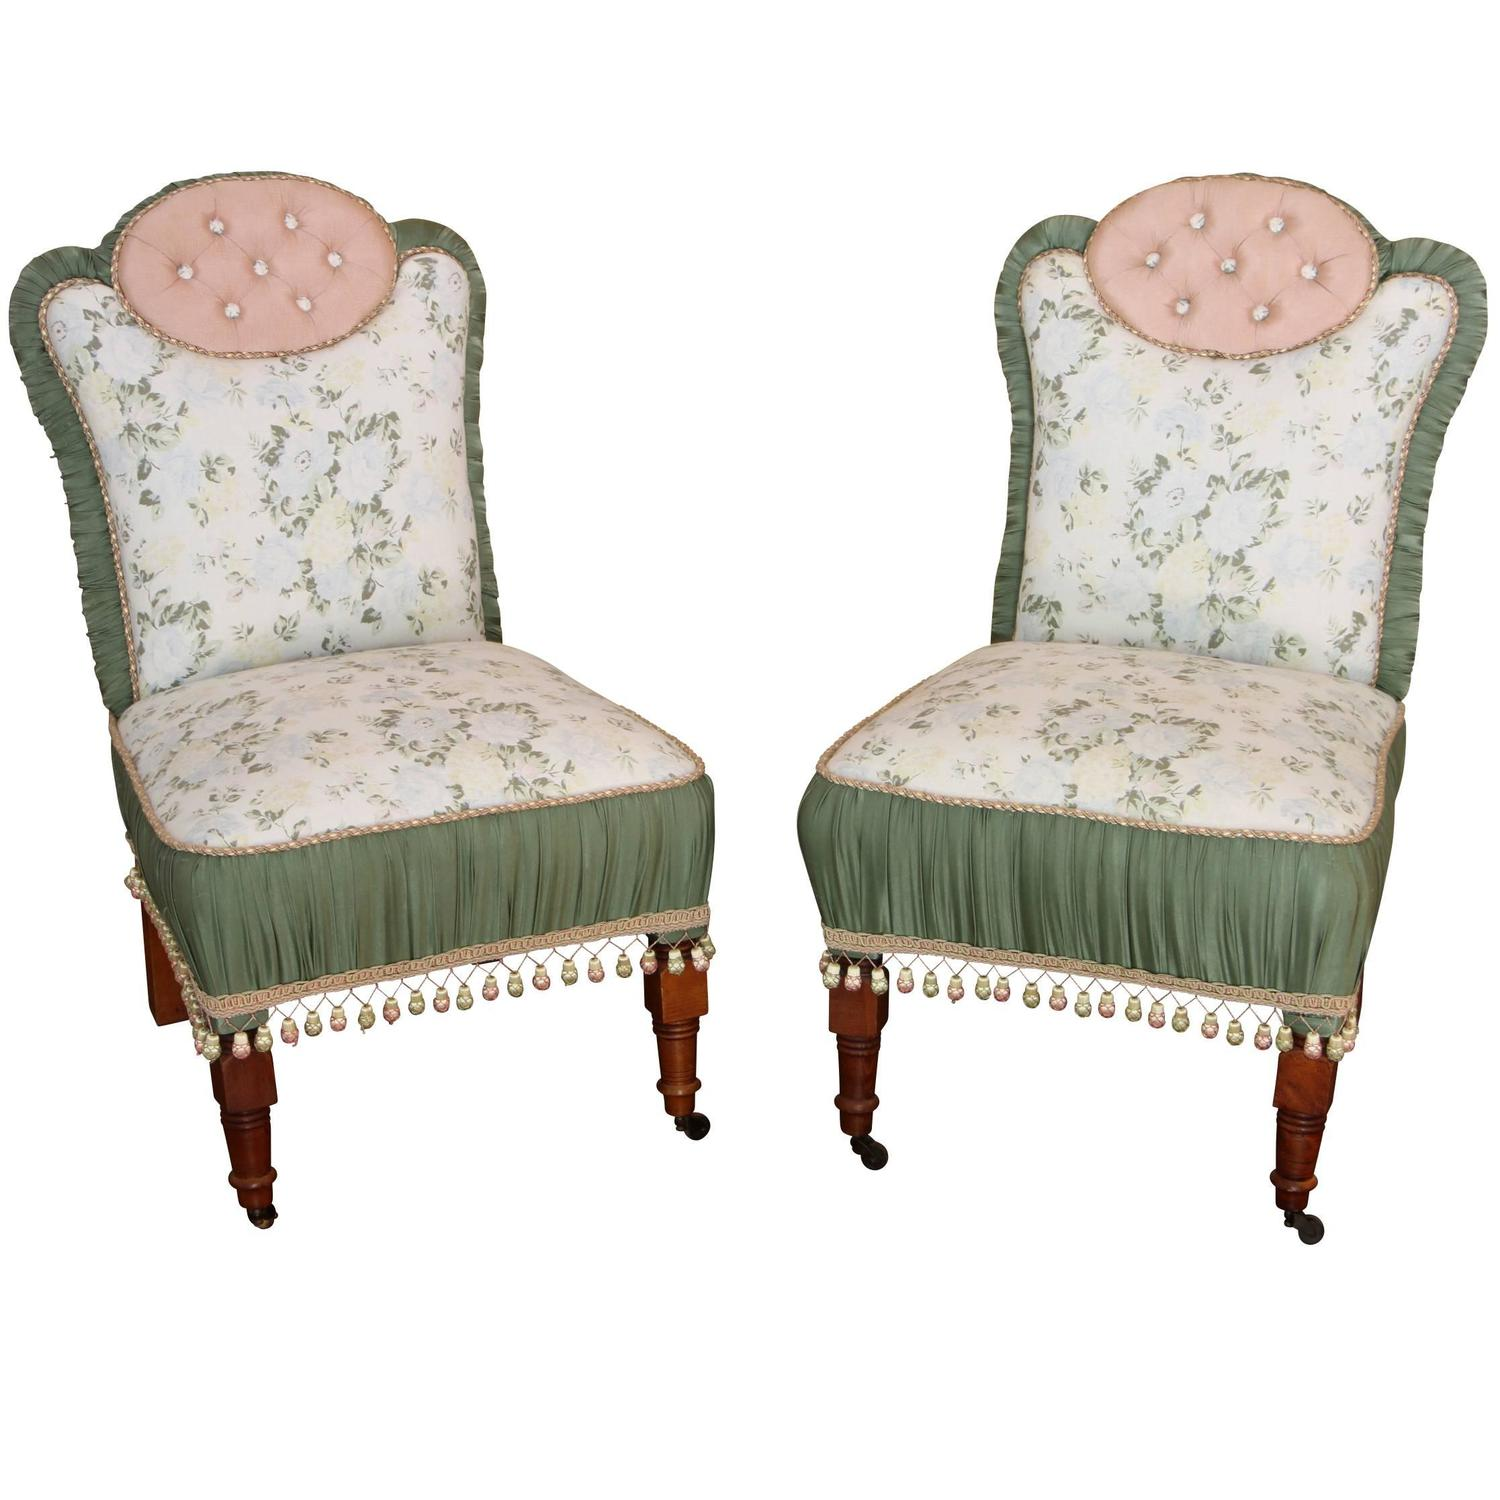 upholstered slipper chair bedroom rail height pair of antique custom chairs for sale